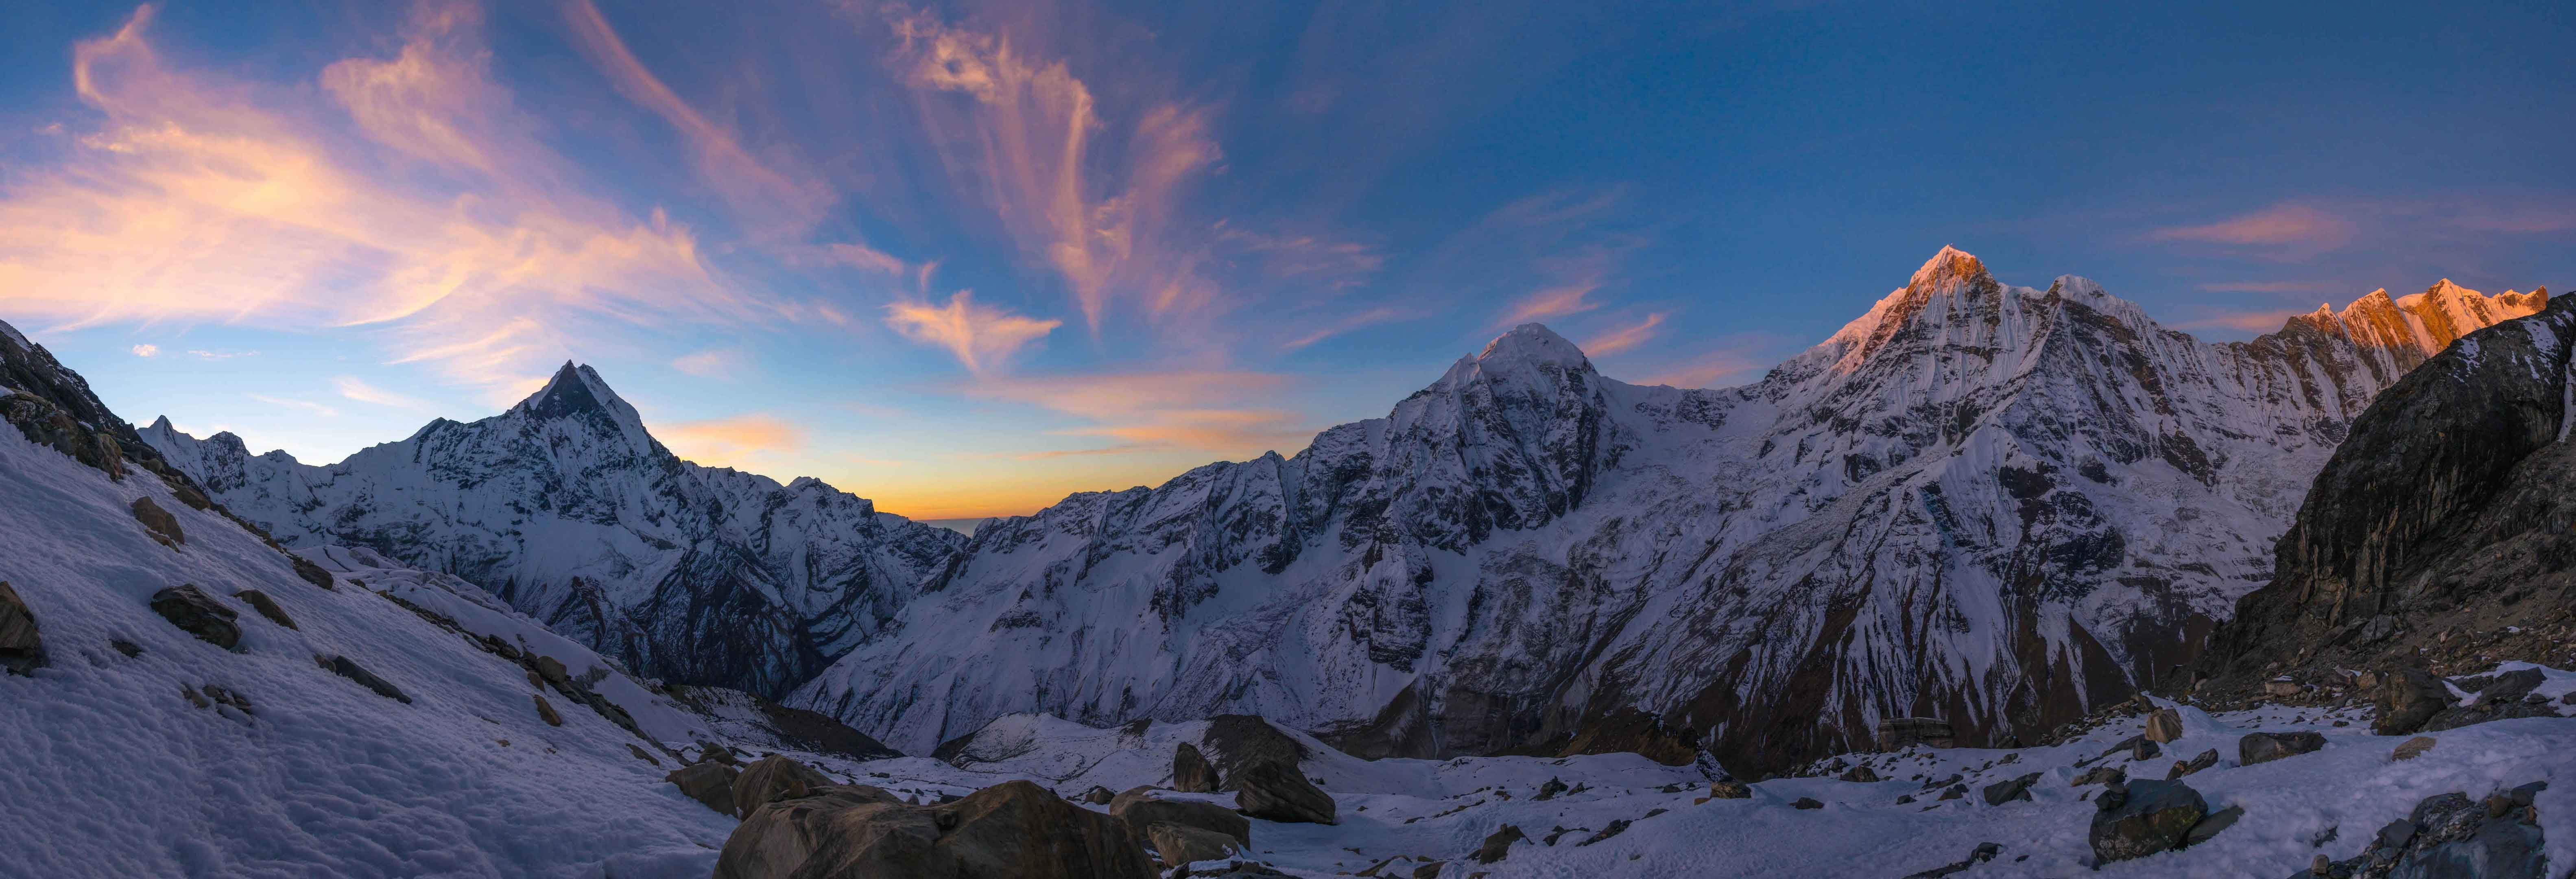 Annapurna-Base-Camp-(4,130-m)